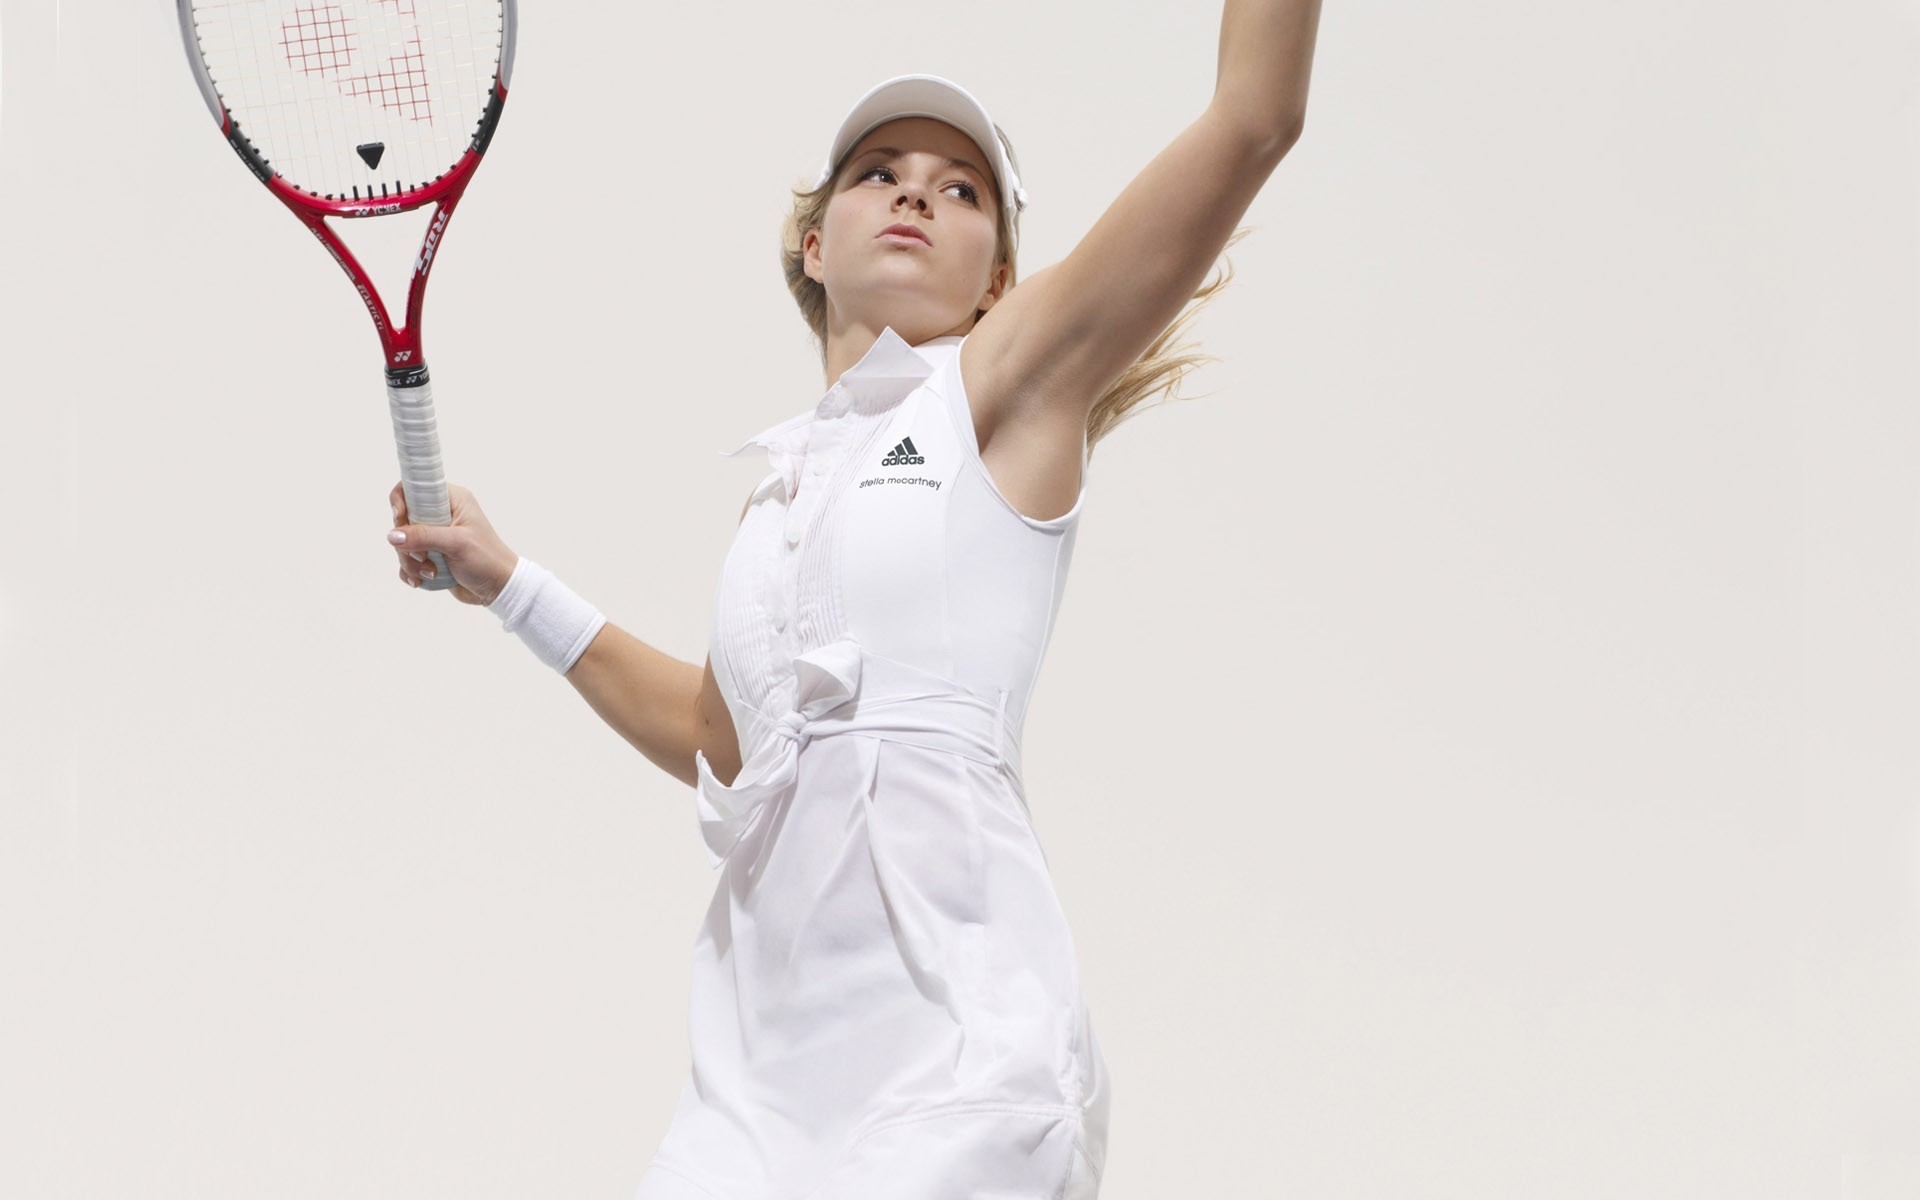 Cute Maria Kirilenko (Tennis Player) Wallpapers